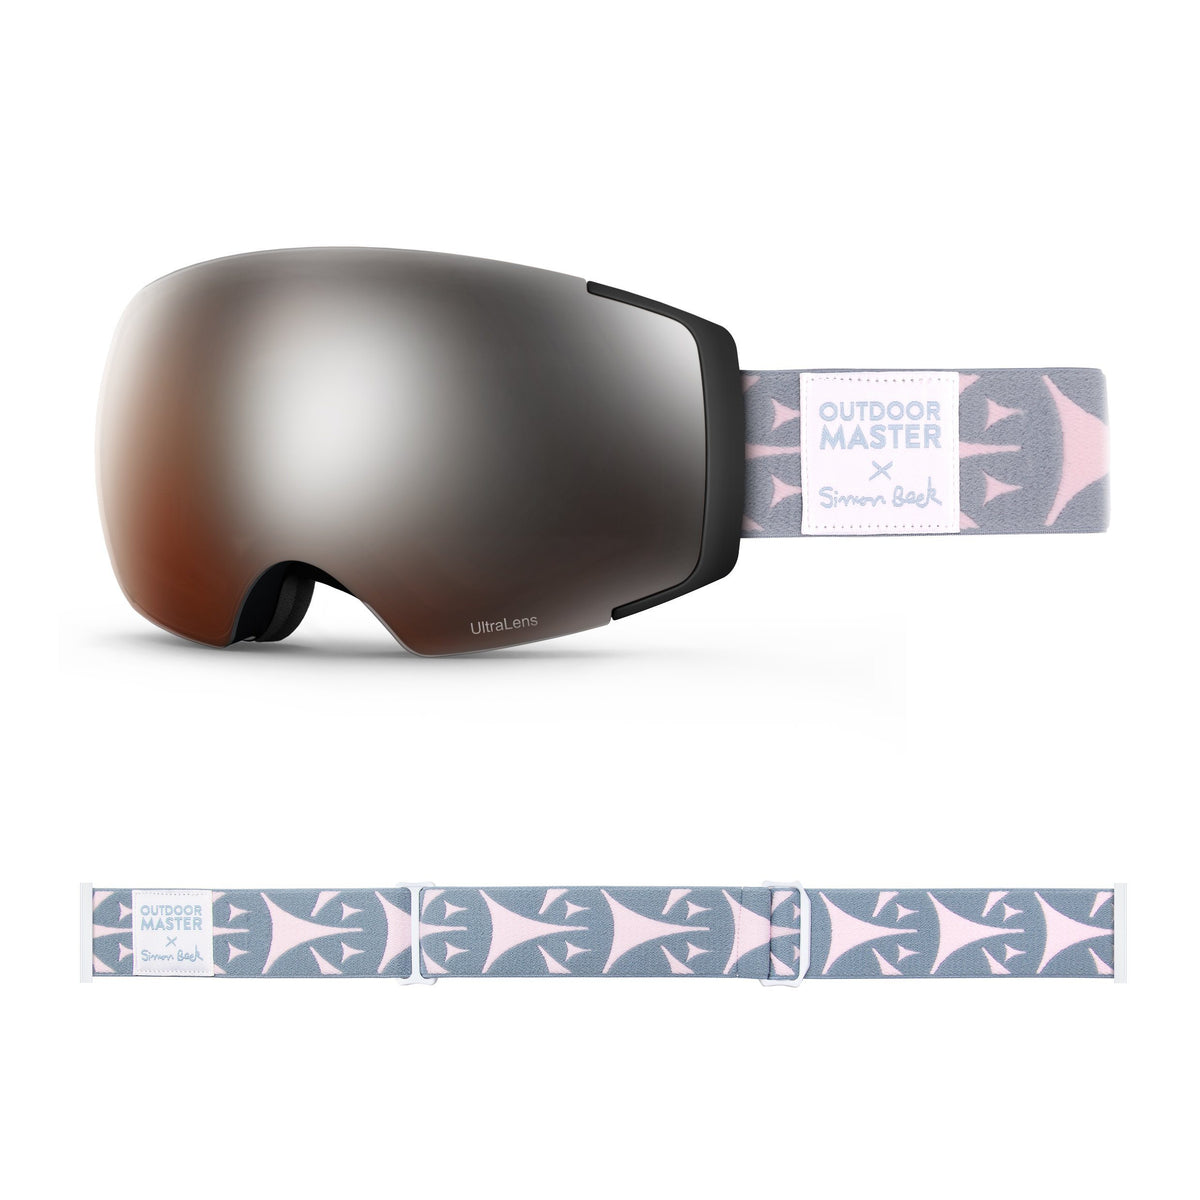 OutdoorMaster x Simon Beck Ski Goggles Pro Series - Snowshoeing Art Limited Edition OutdoorMaster LutraLens VLT 13% Optimized Orange with REVO Silver Bouncy Triangles